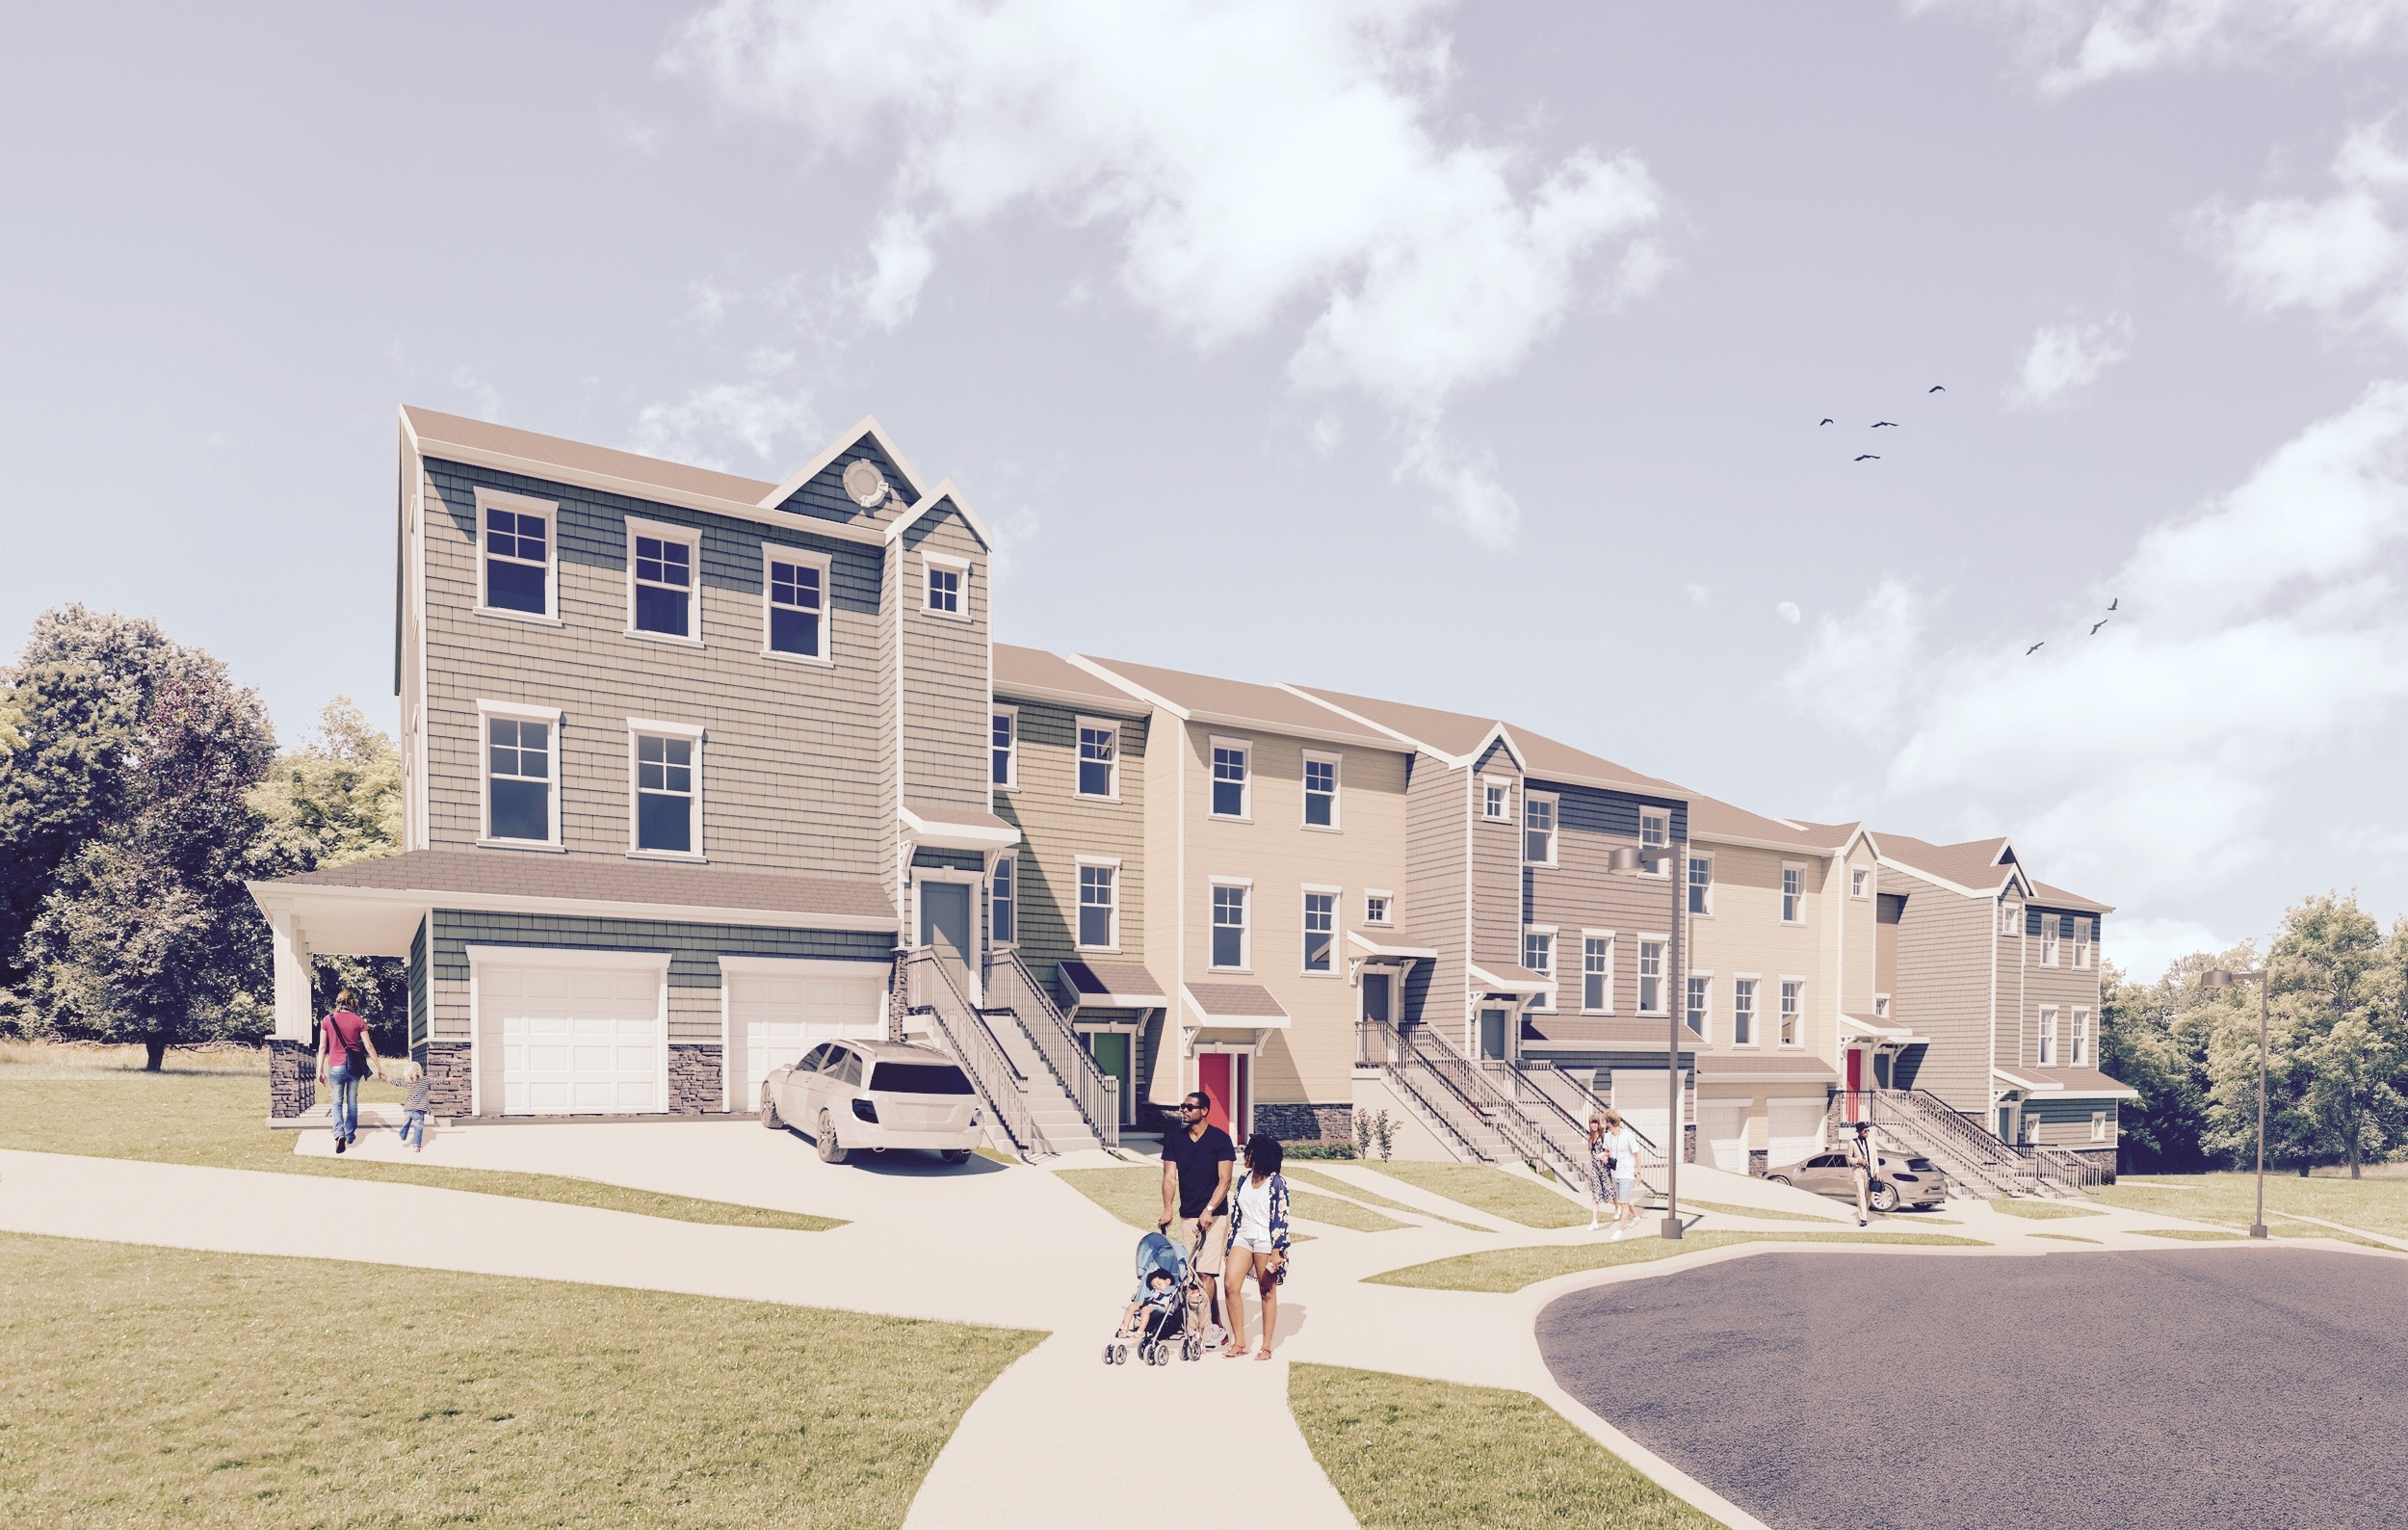 PHASE III CLOSEOUT - ONLY 4 HOMES LEFT